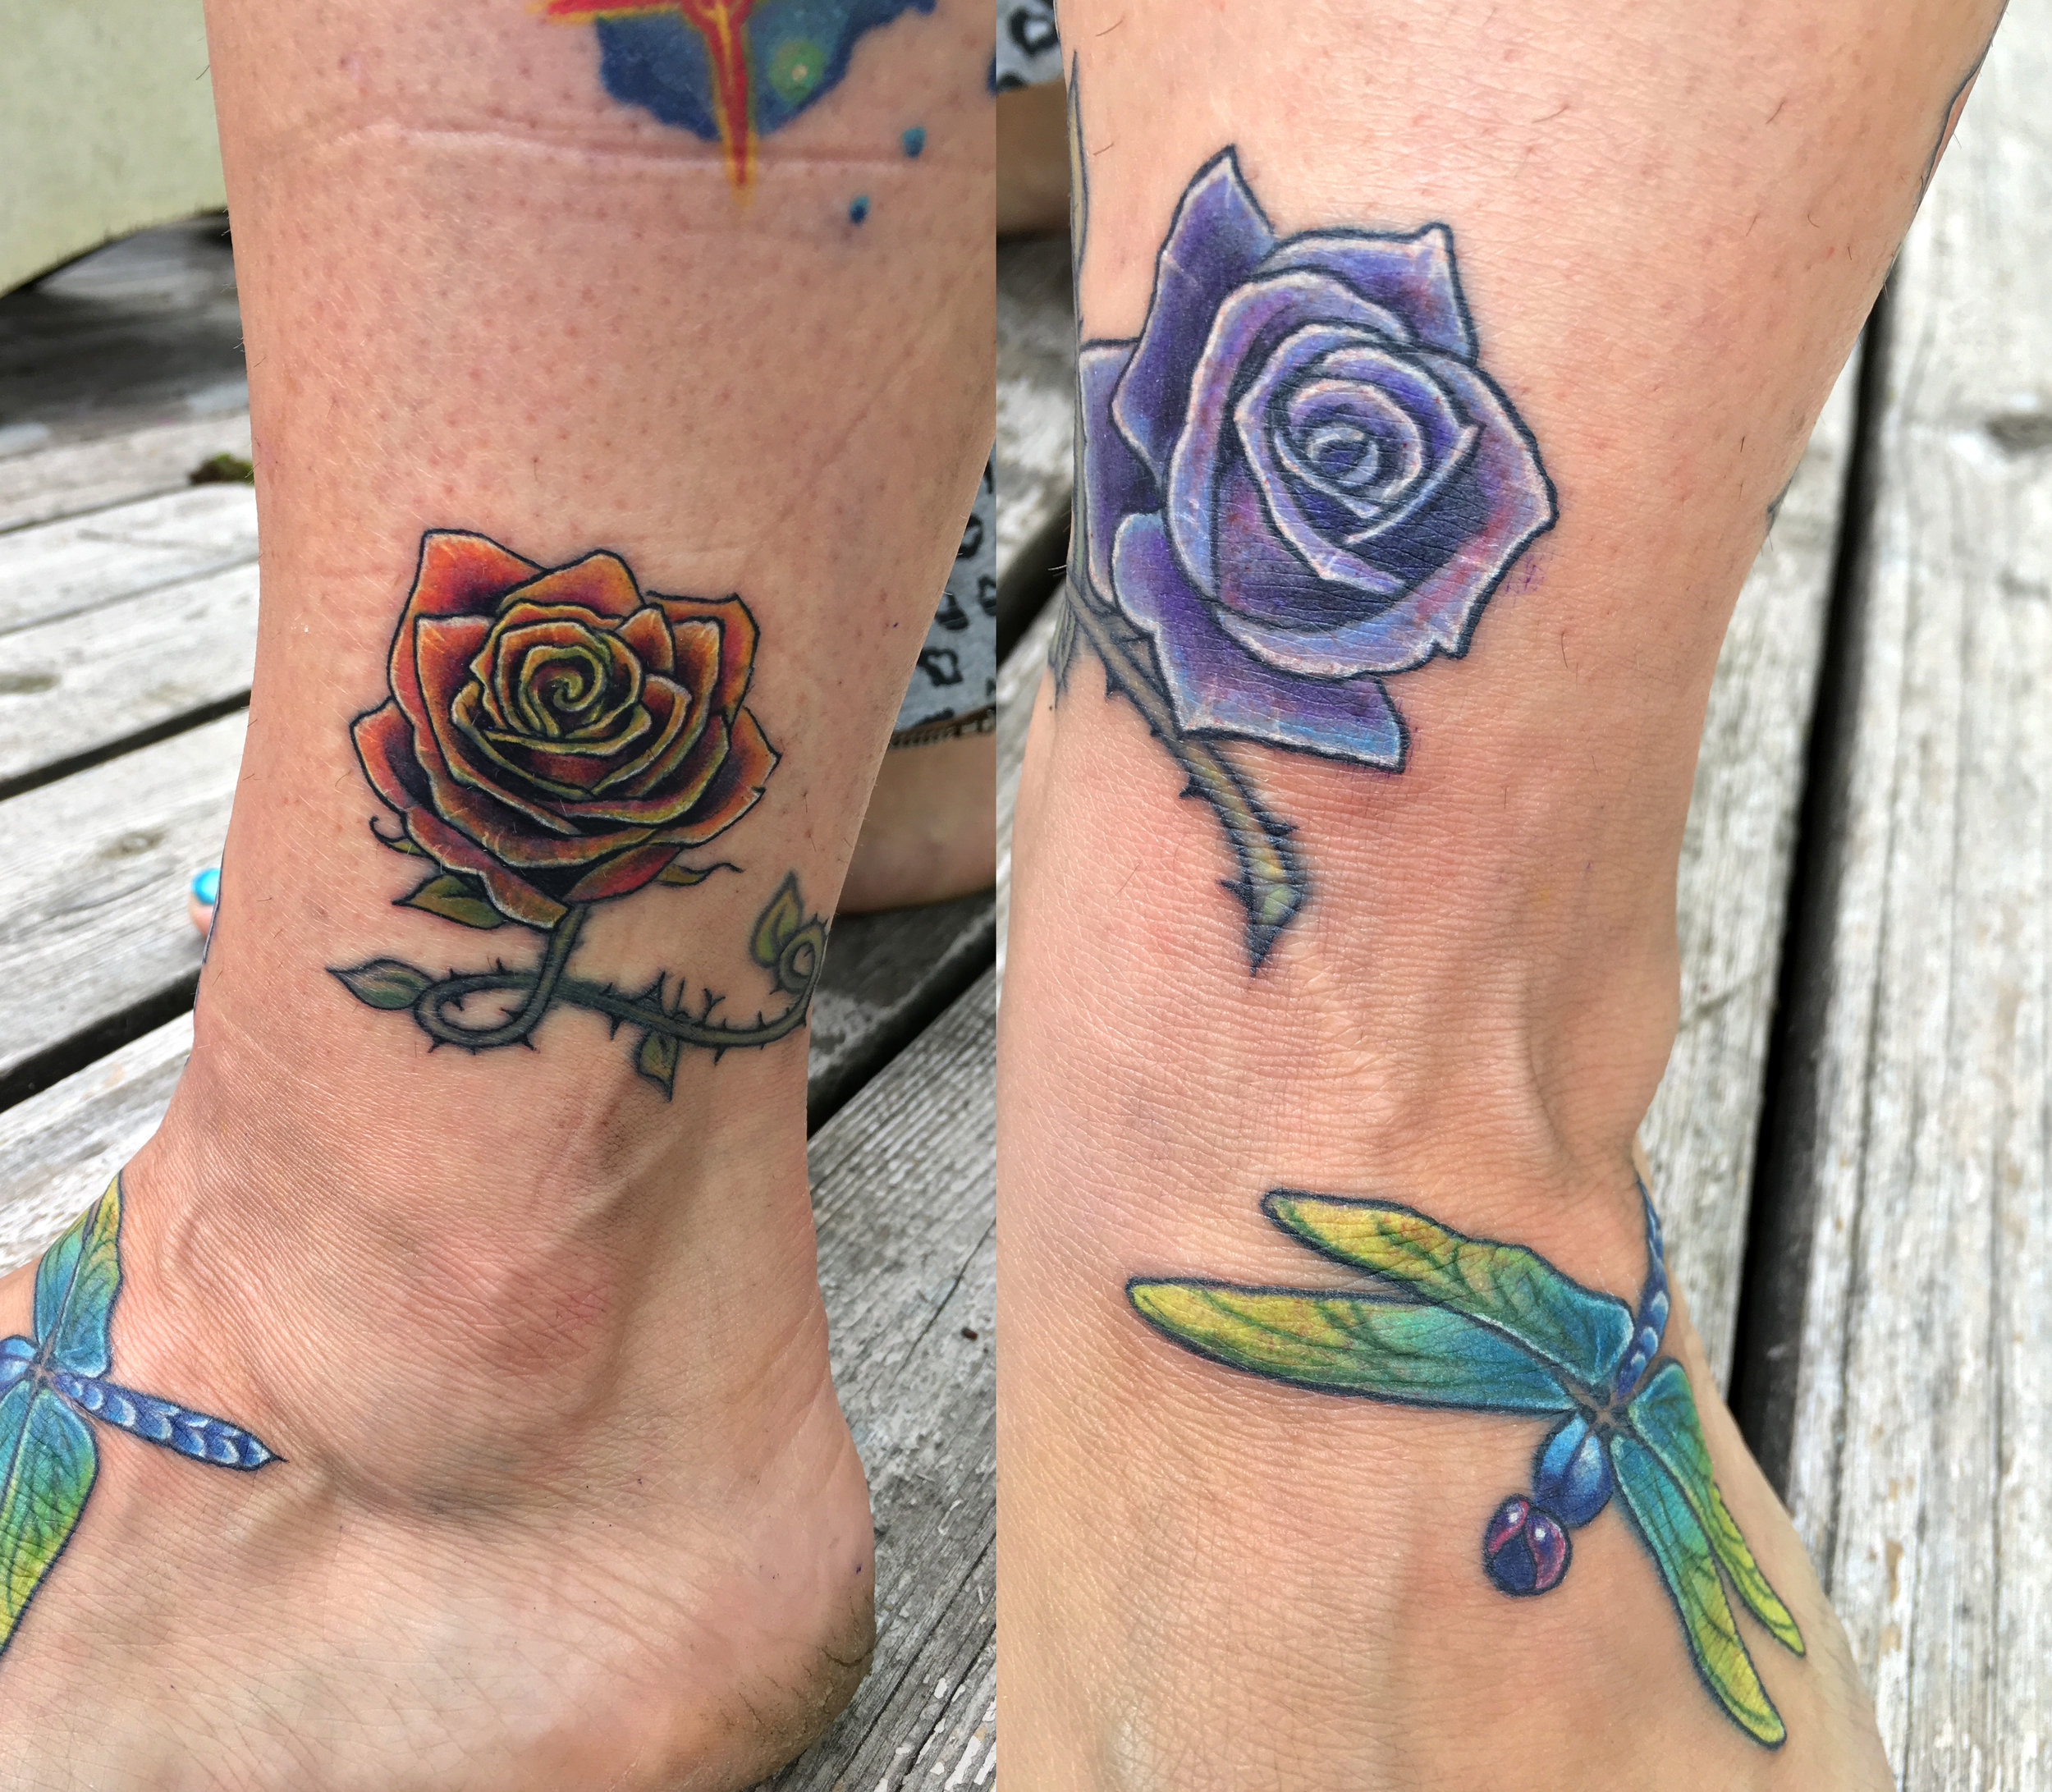 Colleen's coverup rose anklet